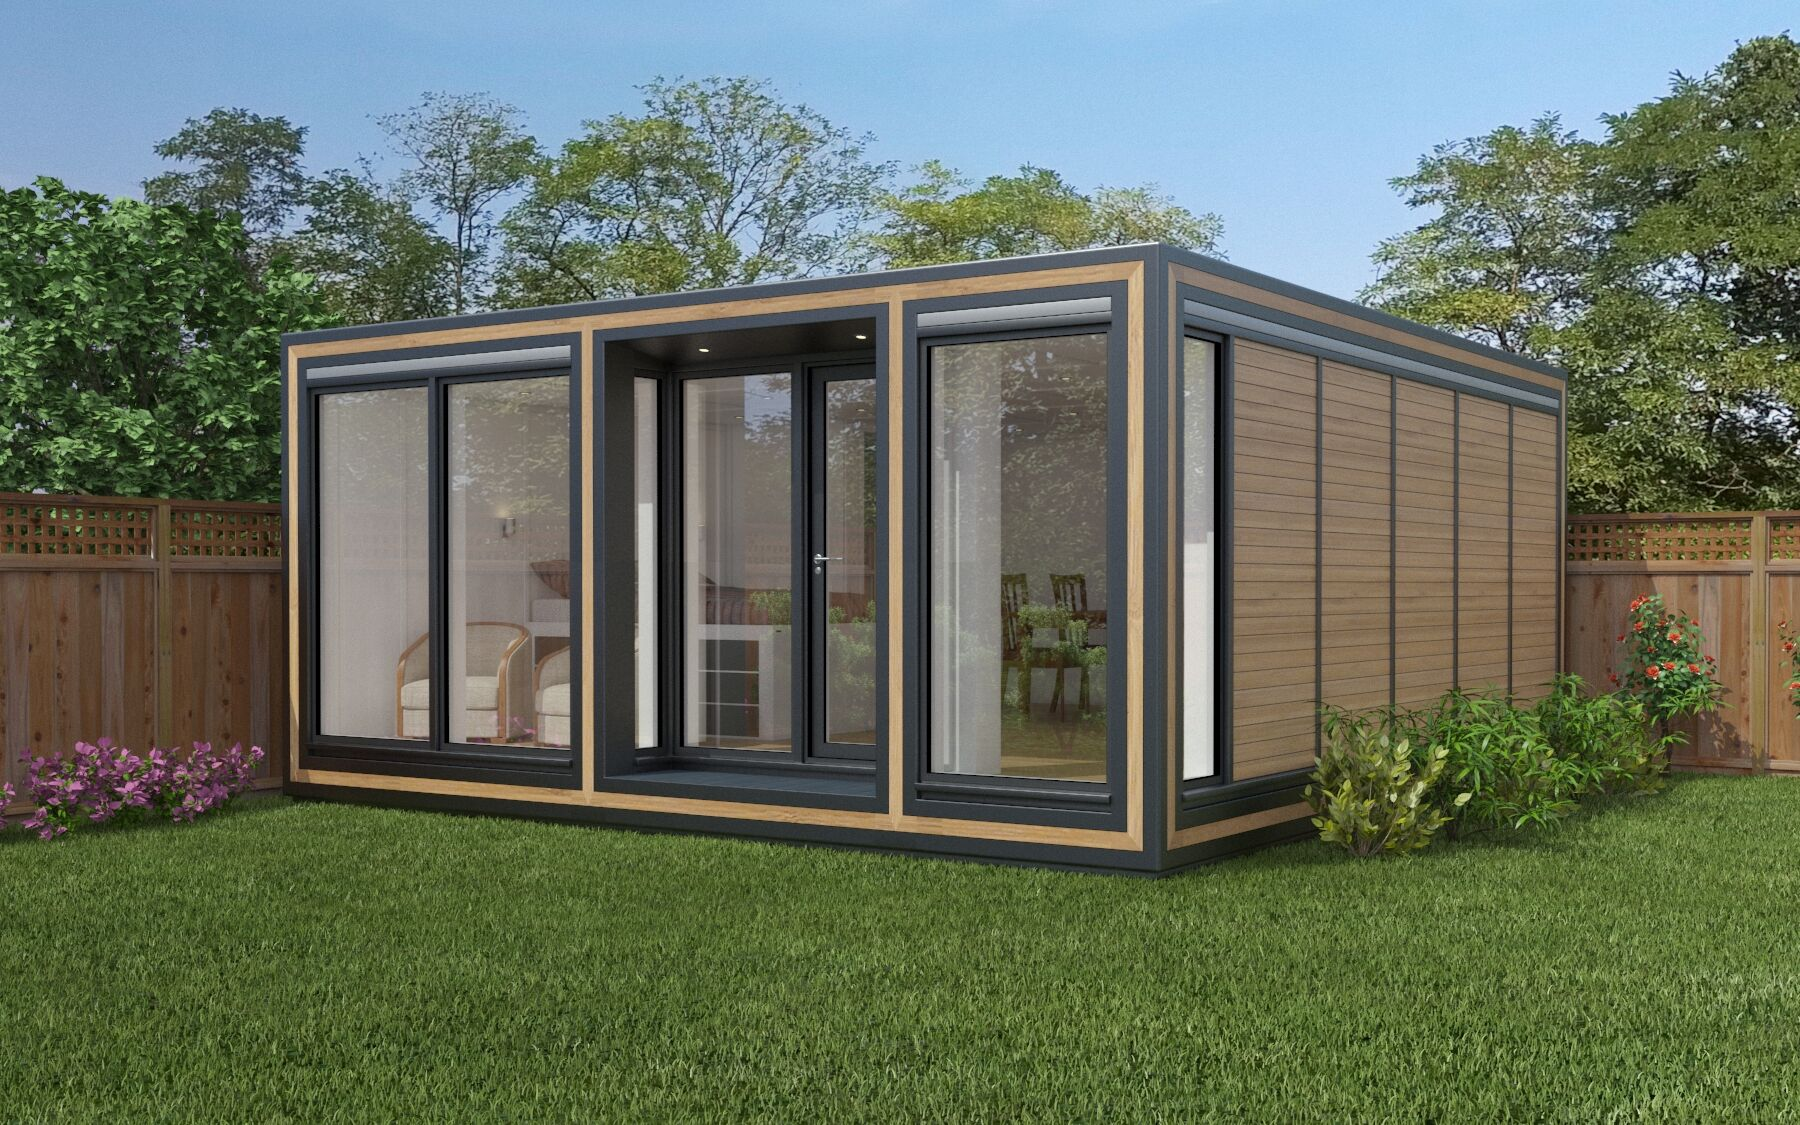 The substantial Zedbox 555 garden lodge provides 5.3m x 5.8m of interior space. Garden guest houses from just £47,000.